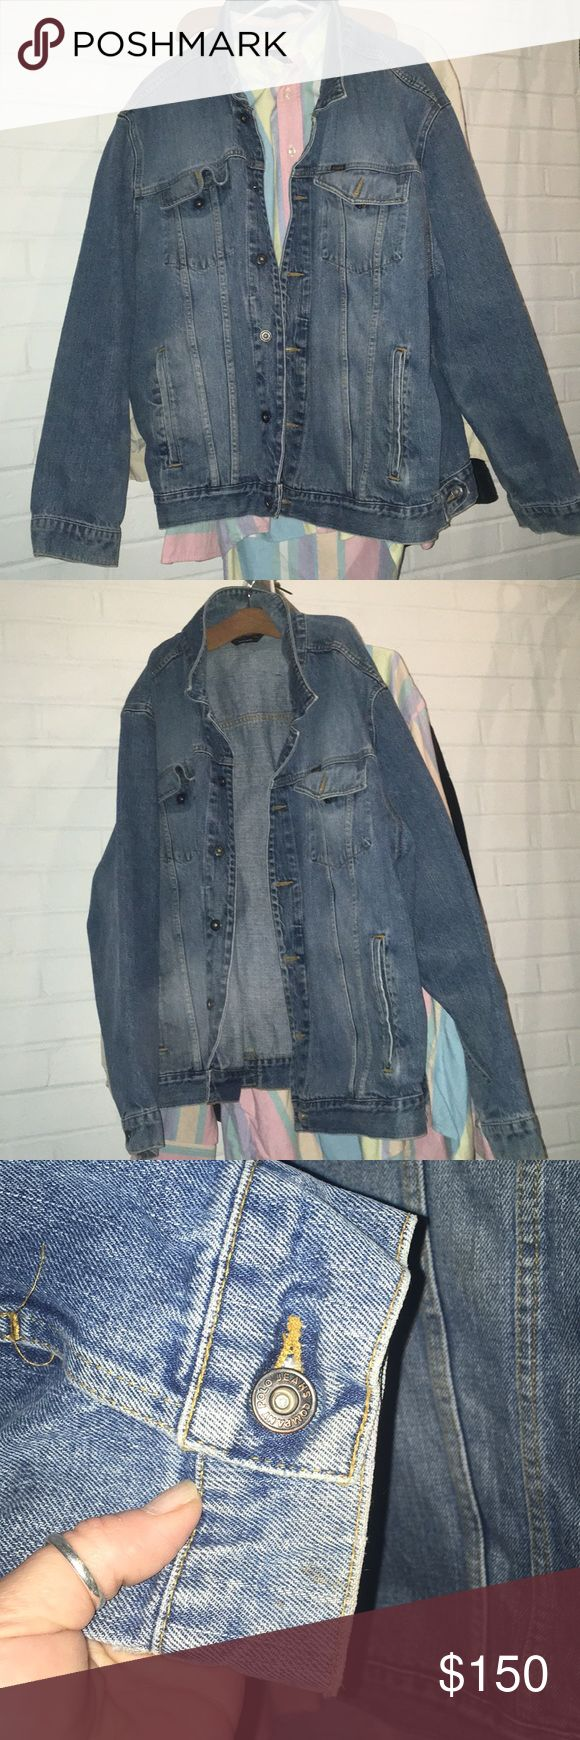 Polo Jeans Company RL Vintage Denim Jacket XXL Awesome Vintage RL Polo Jeans Company Jean Jacket. XXL Big & Tall. A really hot guy needs to be in this Jacket. Excellent Clean Condition and very little sign of wear. Ralph Lauren Jackets & Coats Performance Jackets